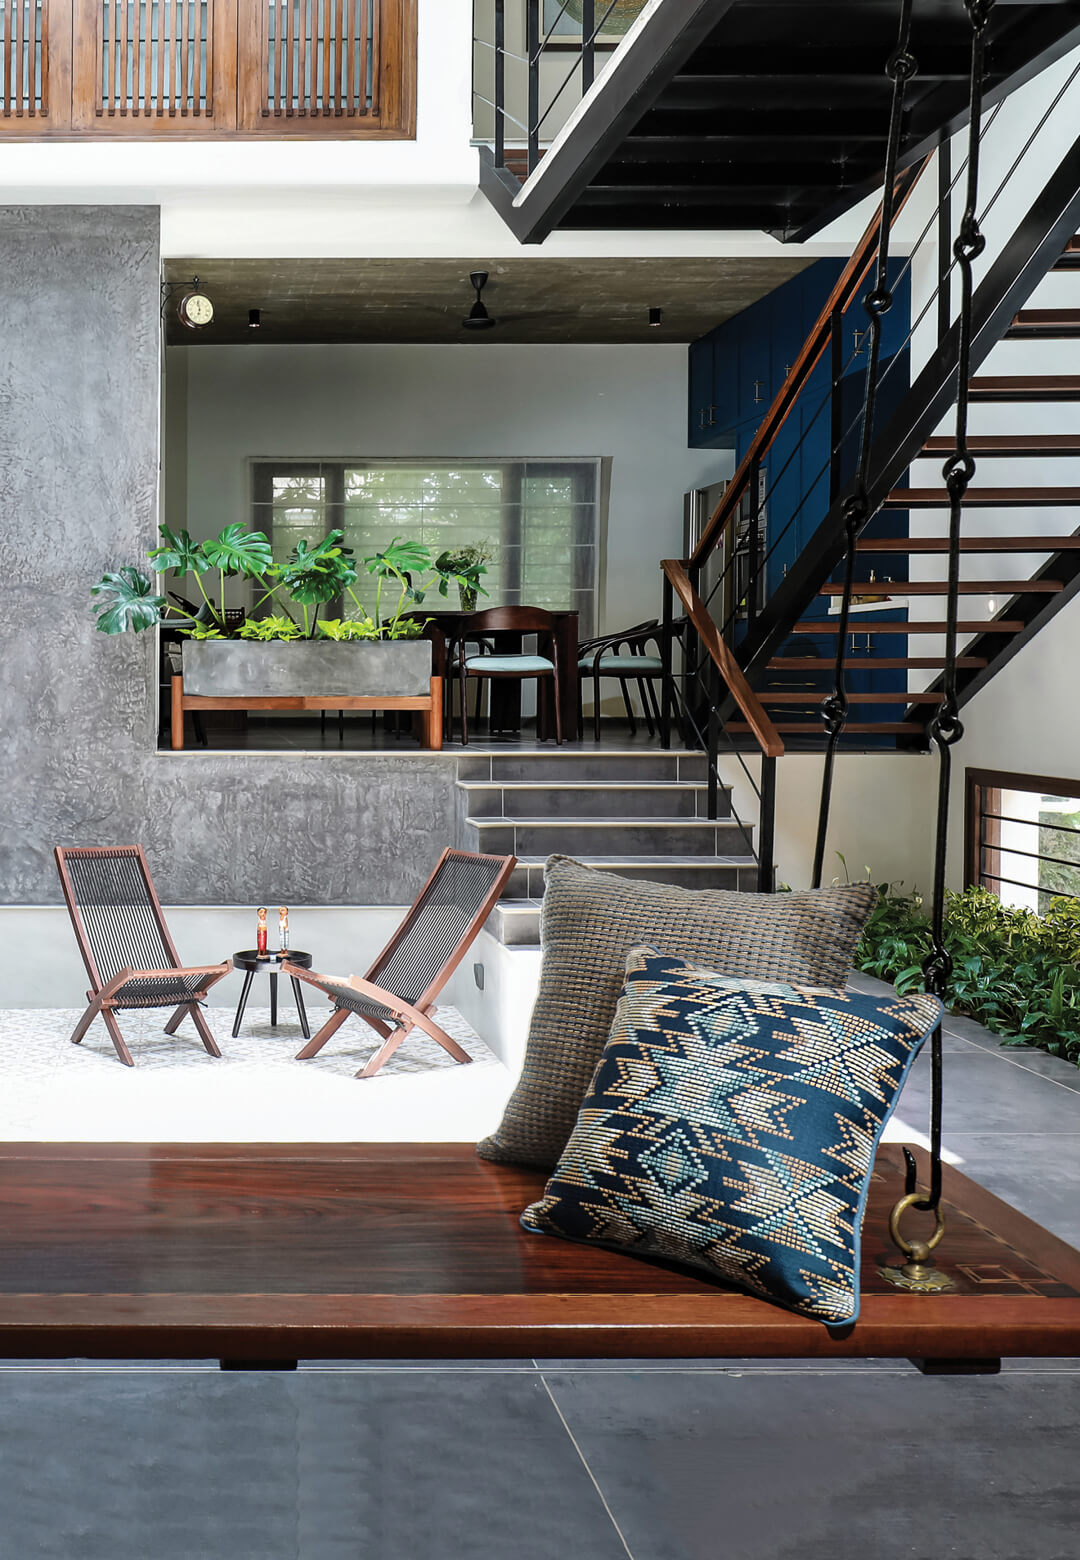 Studio Context Architects' Urban Courtyard House in Chennai, Tamil Nadu, showcasing a traditional design with contemporary touches | Urban Courtyard House | Studio Context Architects | STIRworld